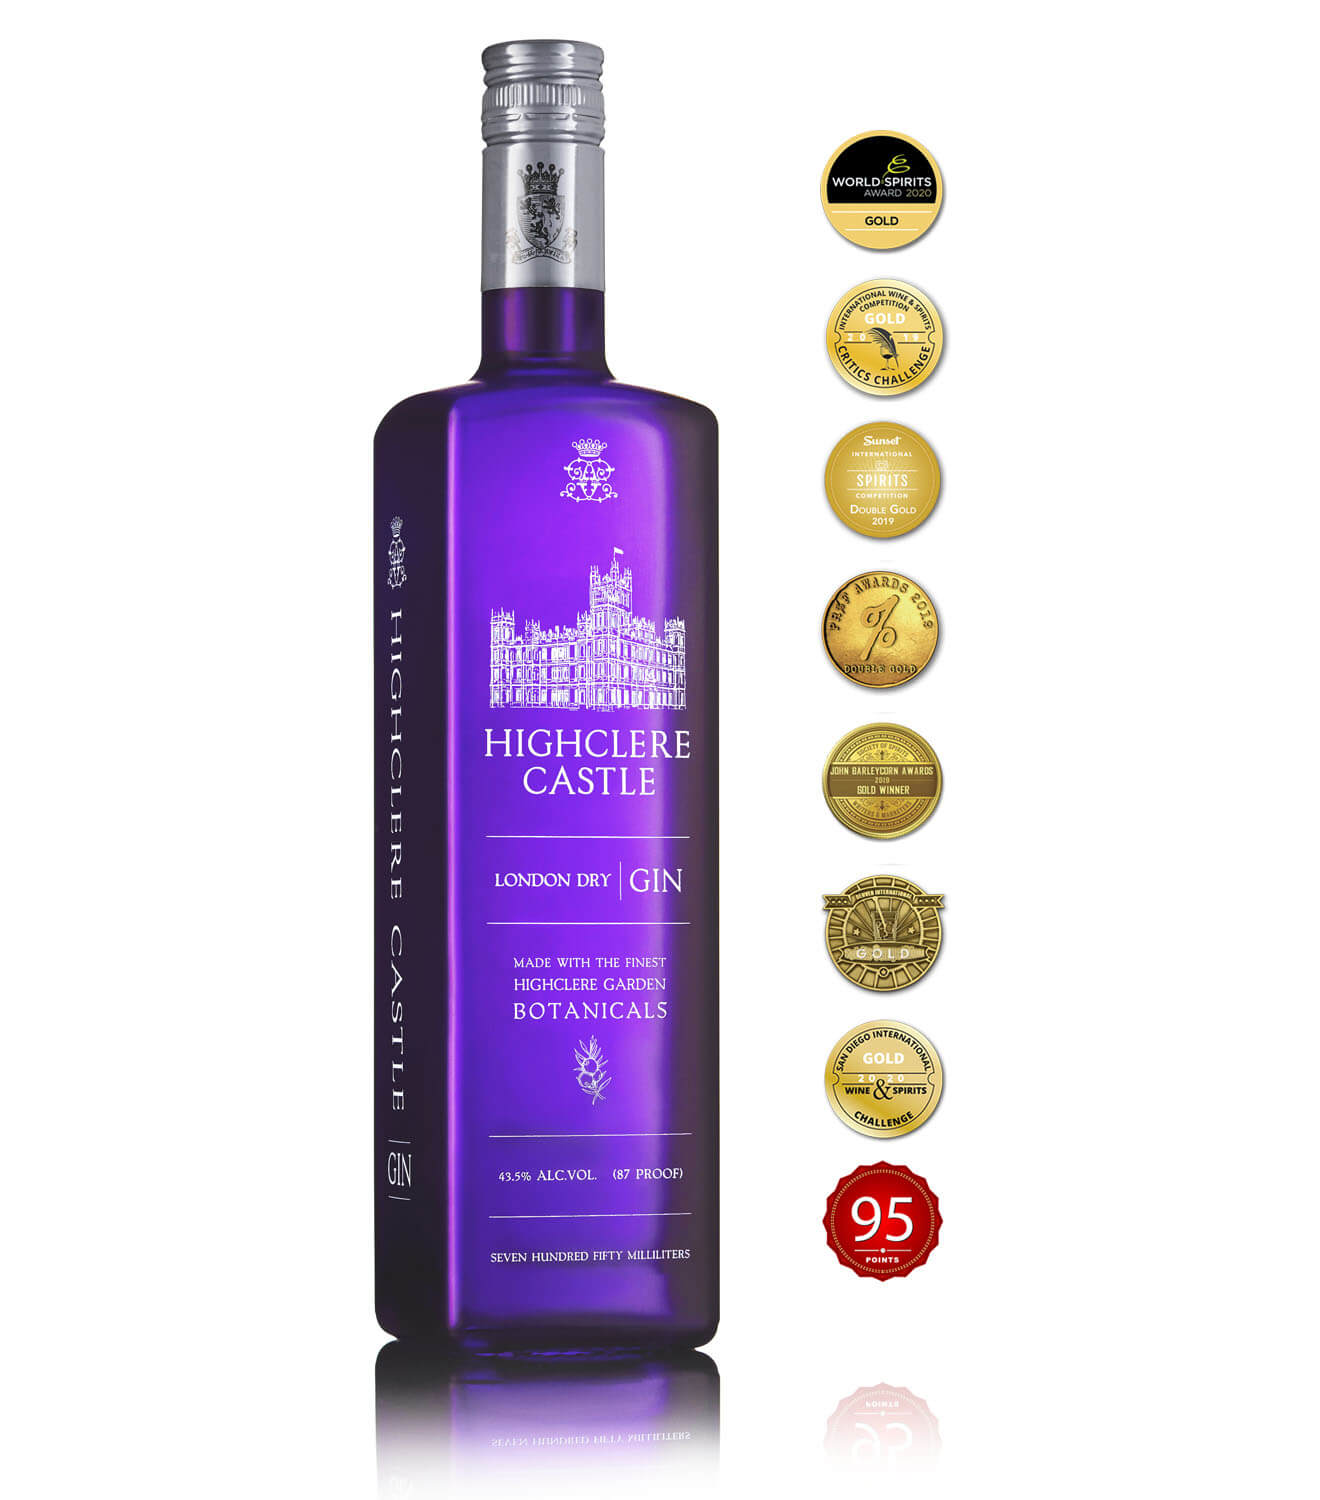 The Highclere Castle - London Dry Gin